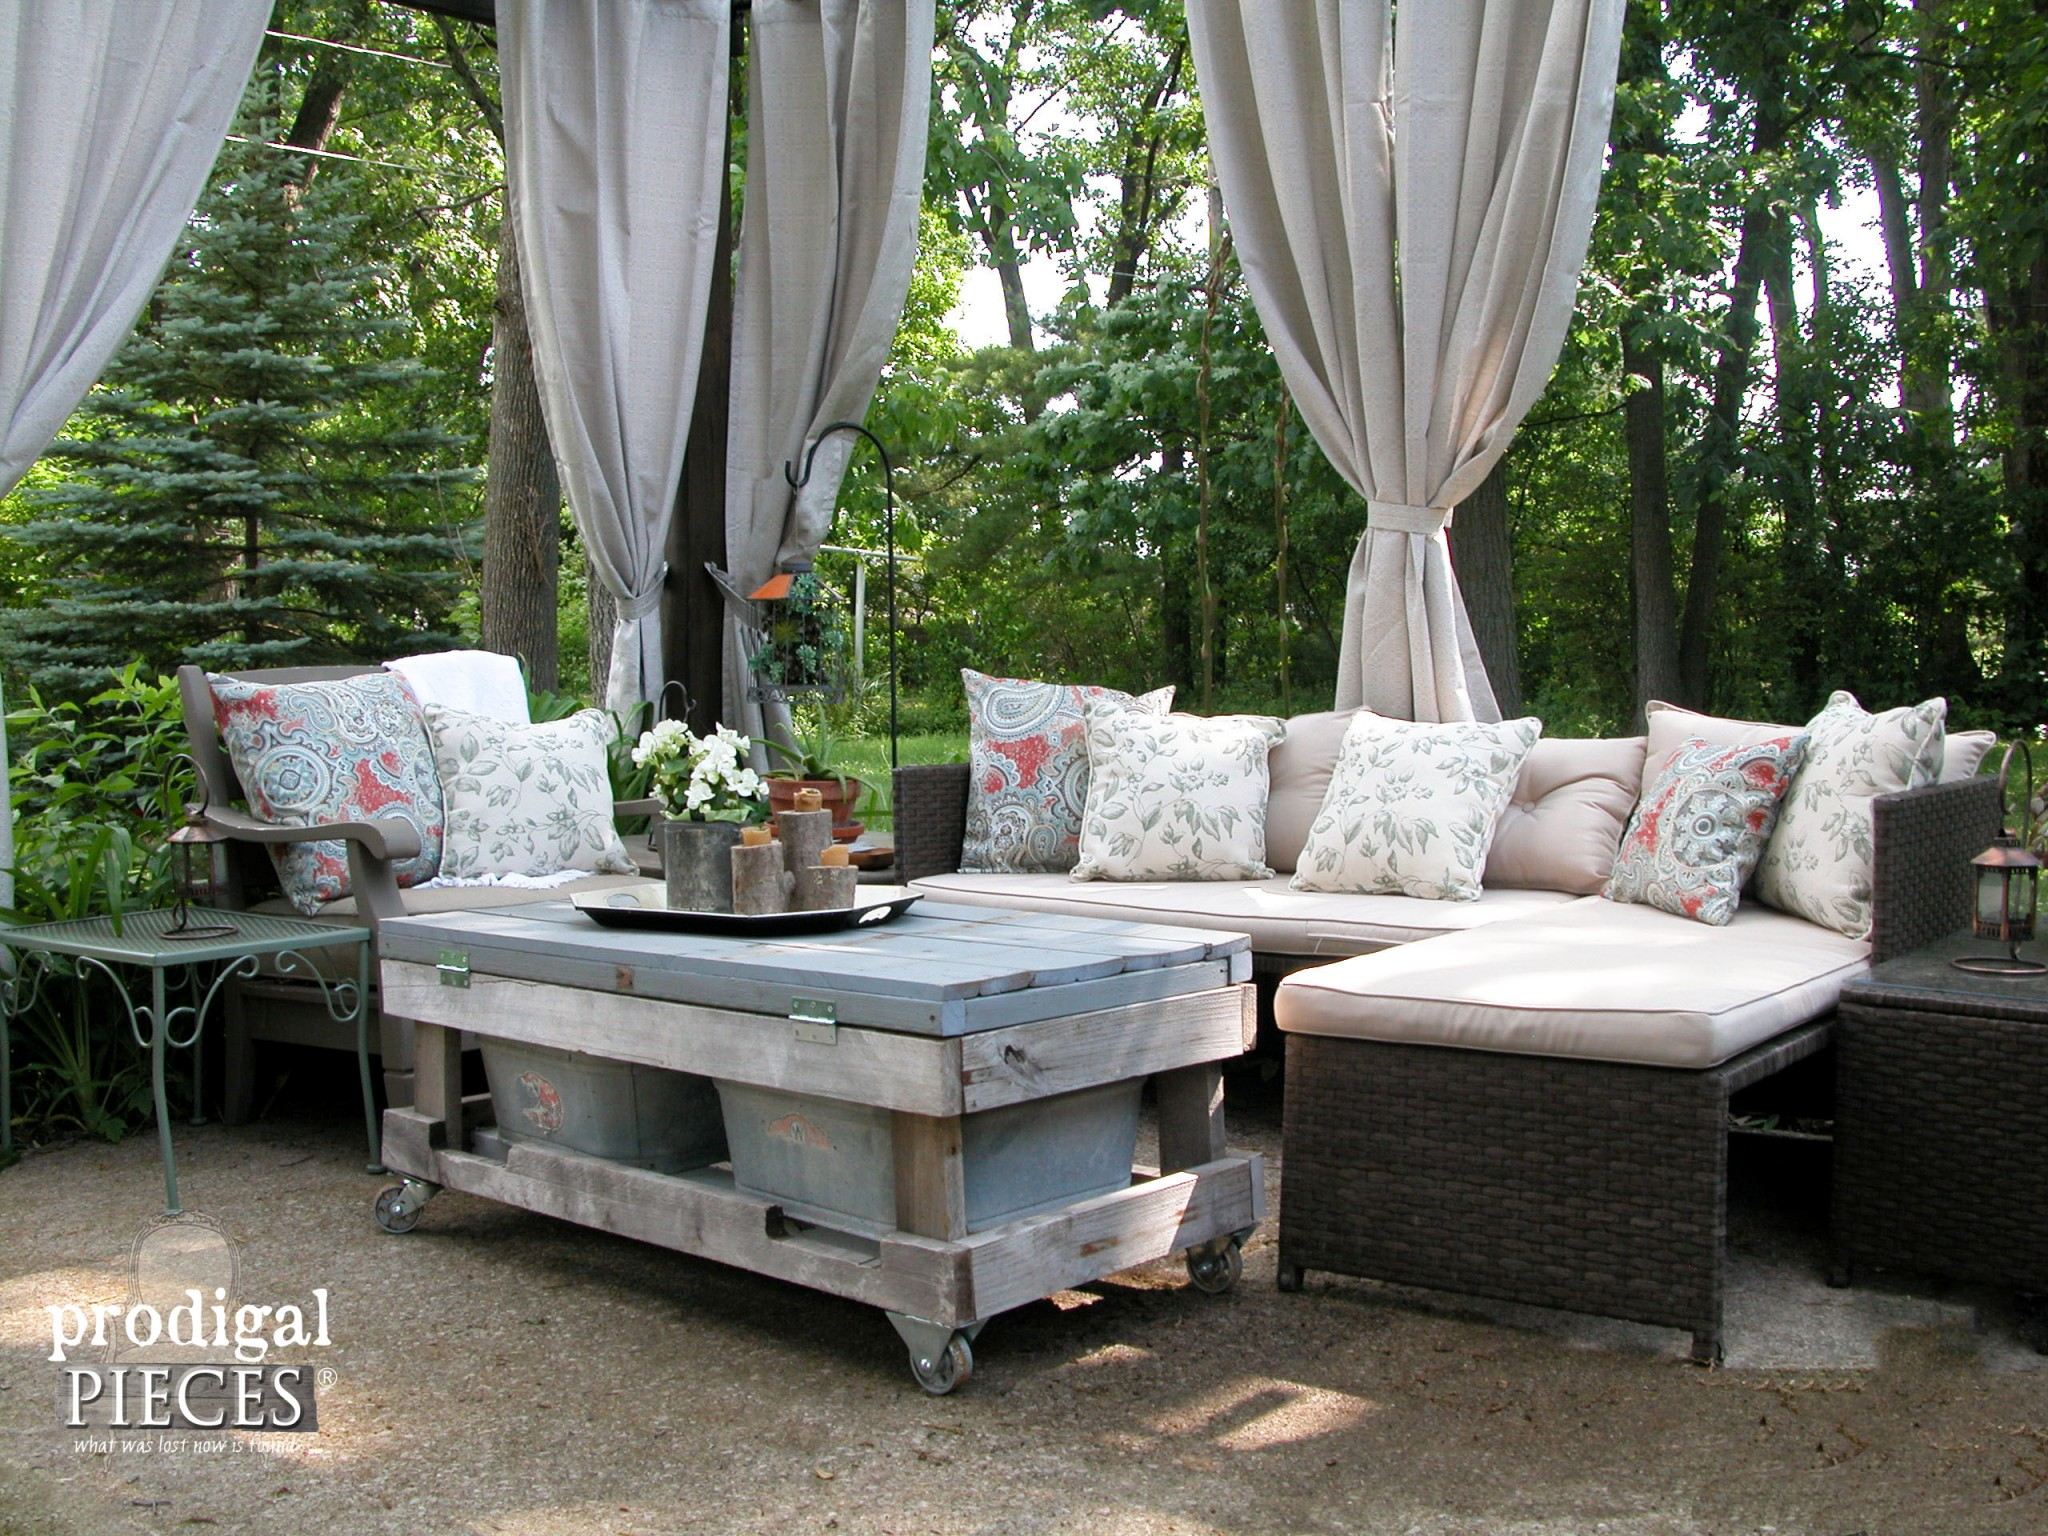 Patio Area Made Cozy with DIY Outdoor Pillows with Tutorial by Prodigal Pieces | www.prodigalpieces.com